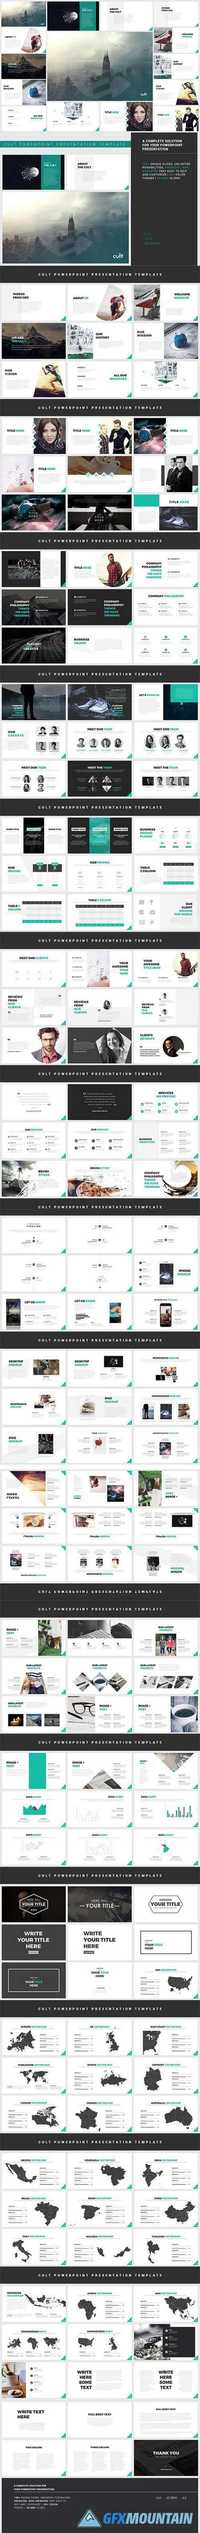 Powerpoint Template - Cult 917811